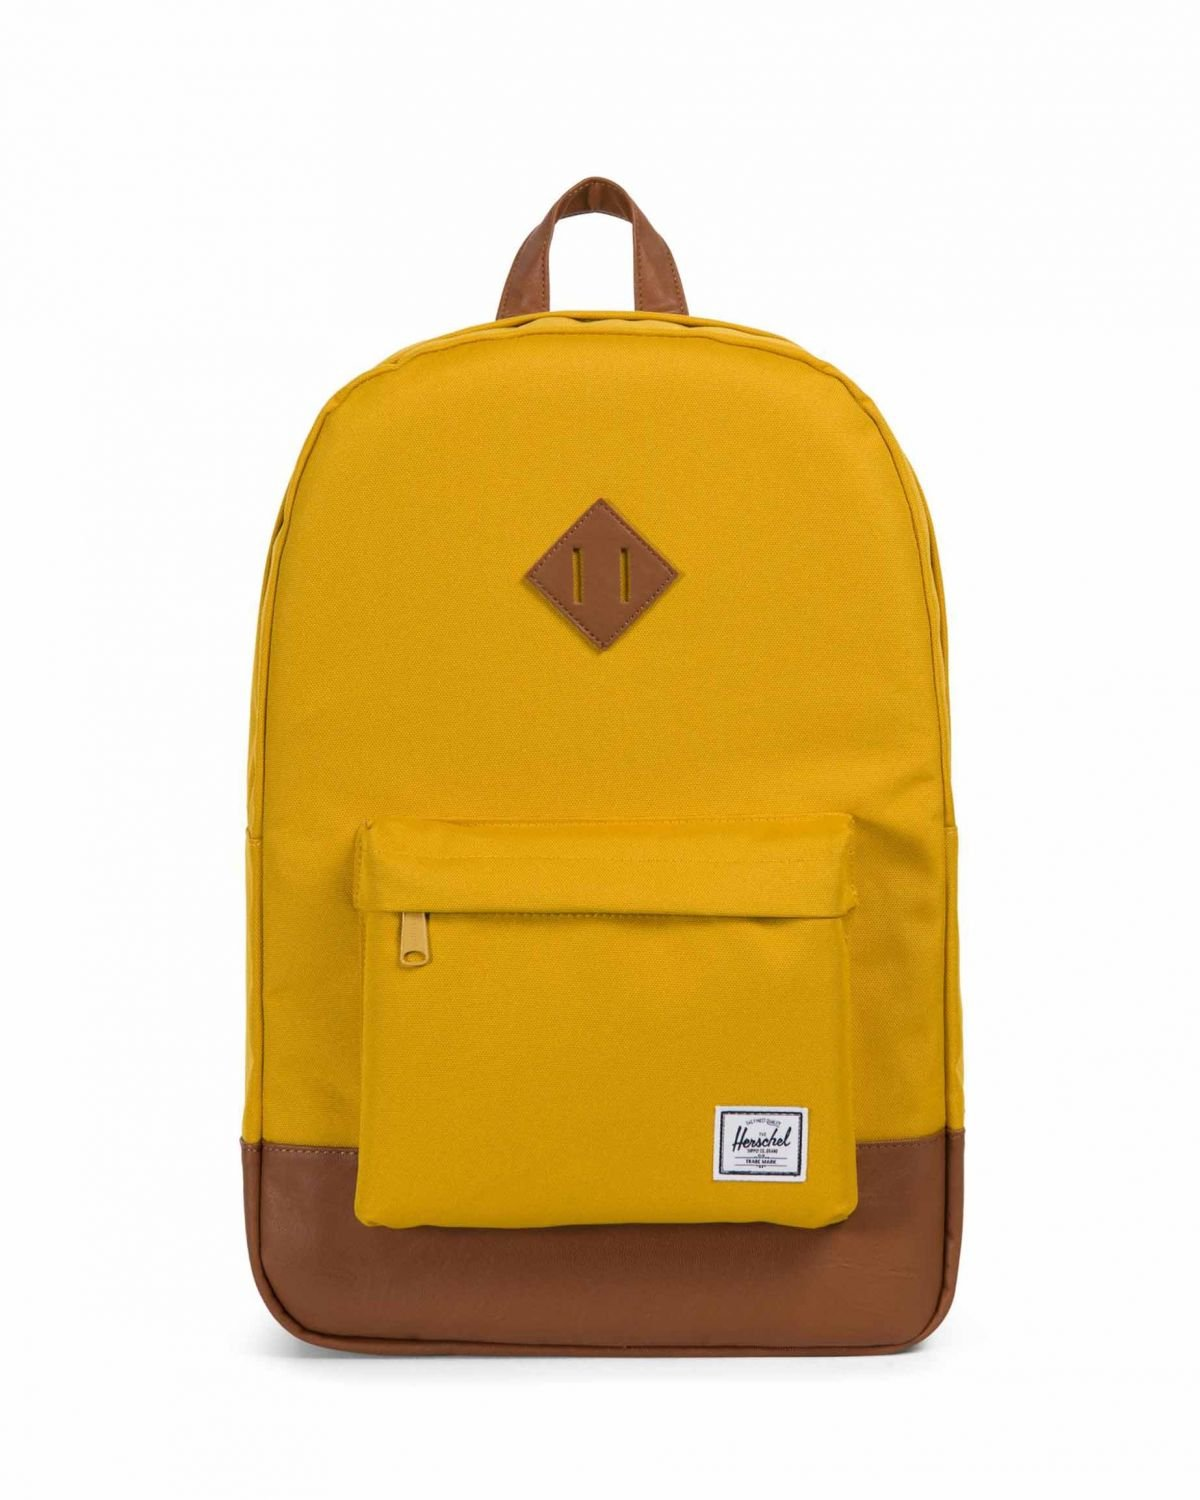 Herschel Heritage Sırt Çantası 10007 Arrowwood/Tan Synthetic Leather